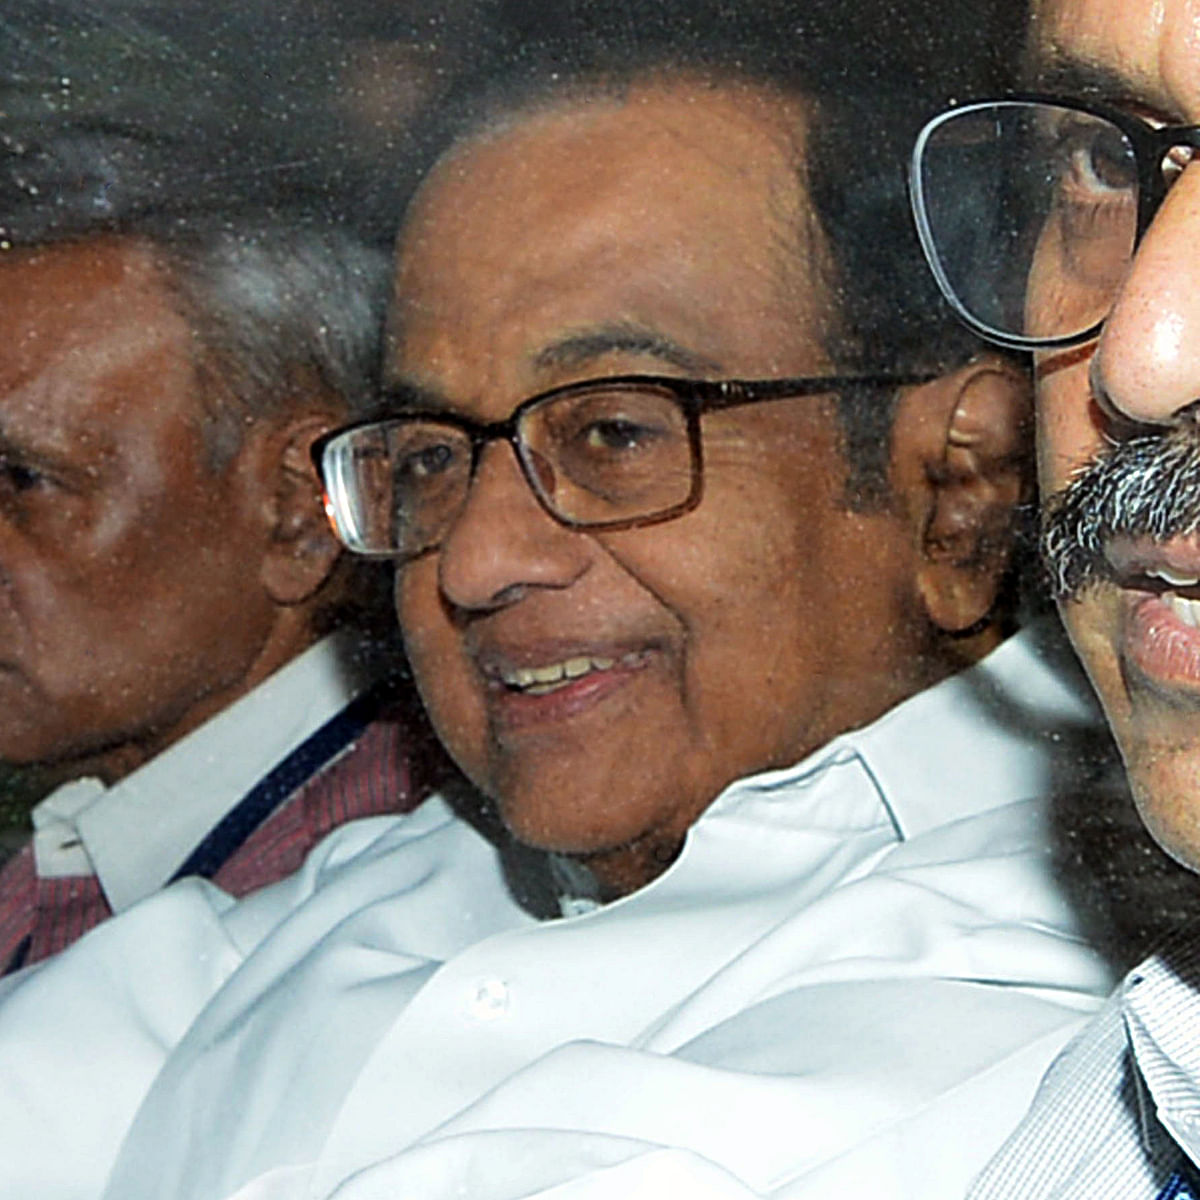 INX Media case: CBI remand of P Chidambaram extended further till September 2